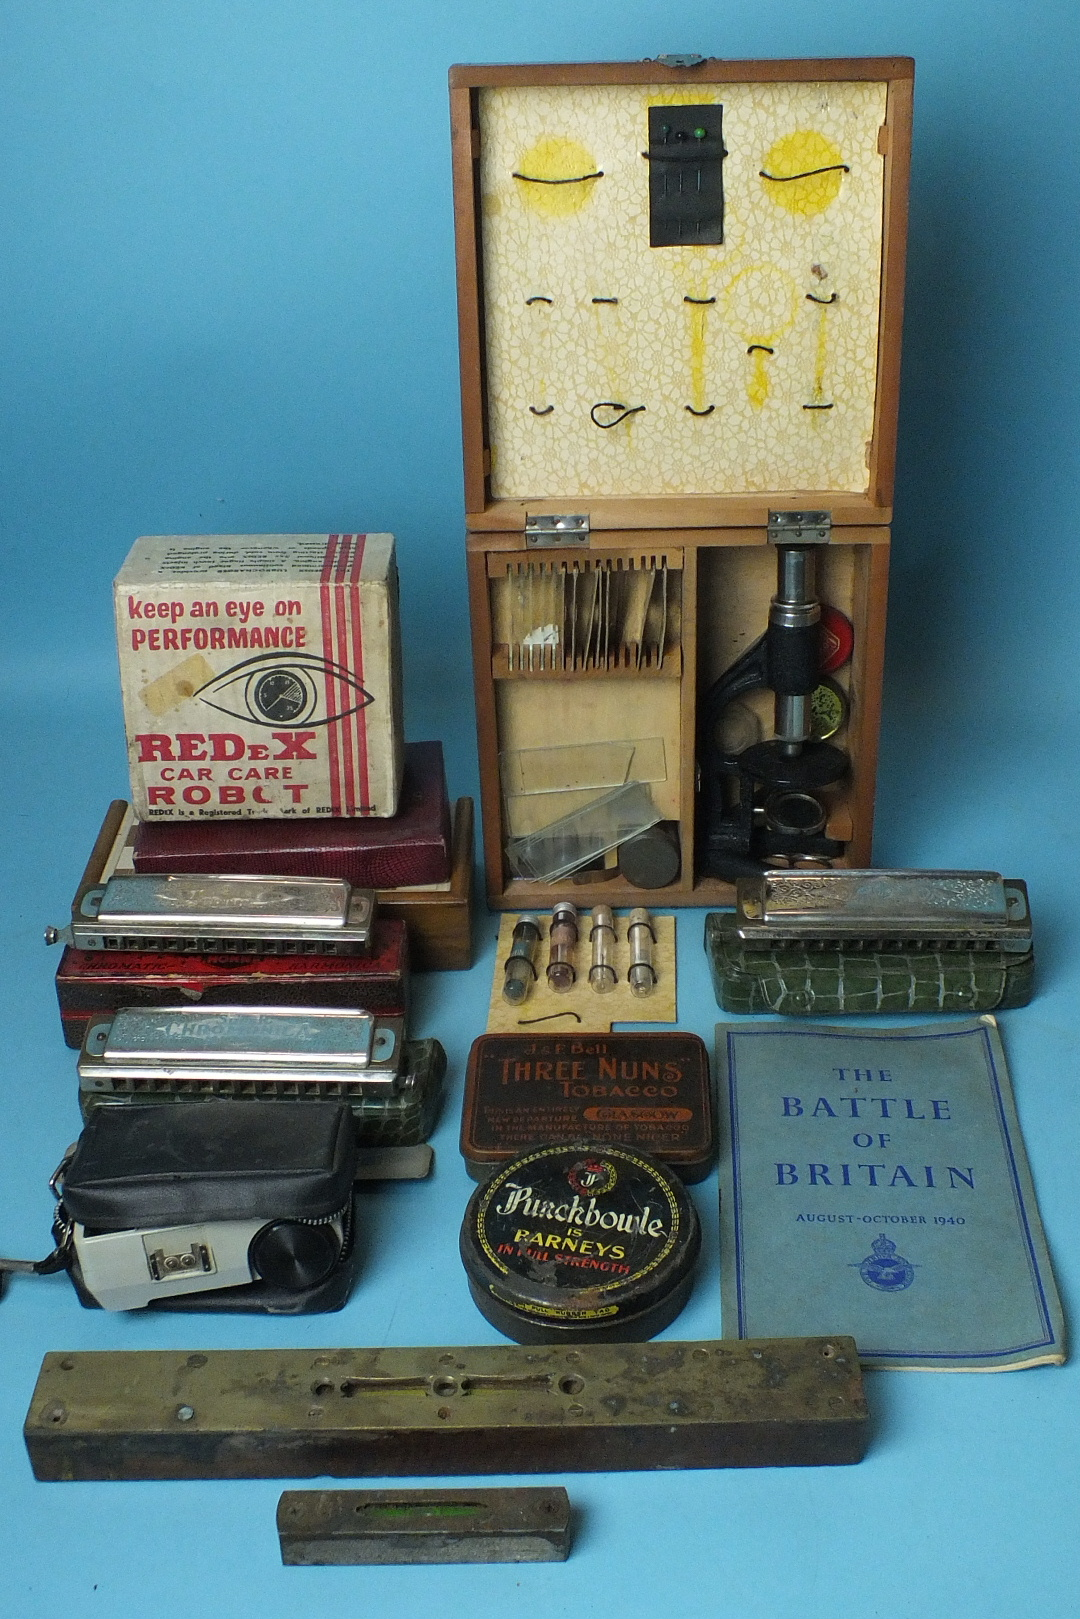 Lot 687 - Three Hohner Chromonicas, cased, a brass-faced Atkin & Sons level, 30.5cm, a small wood level,